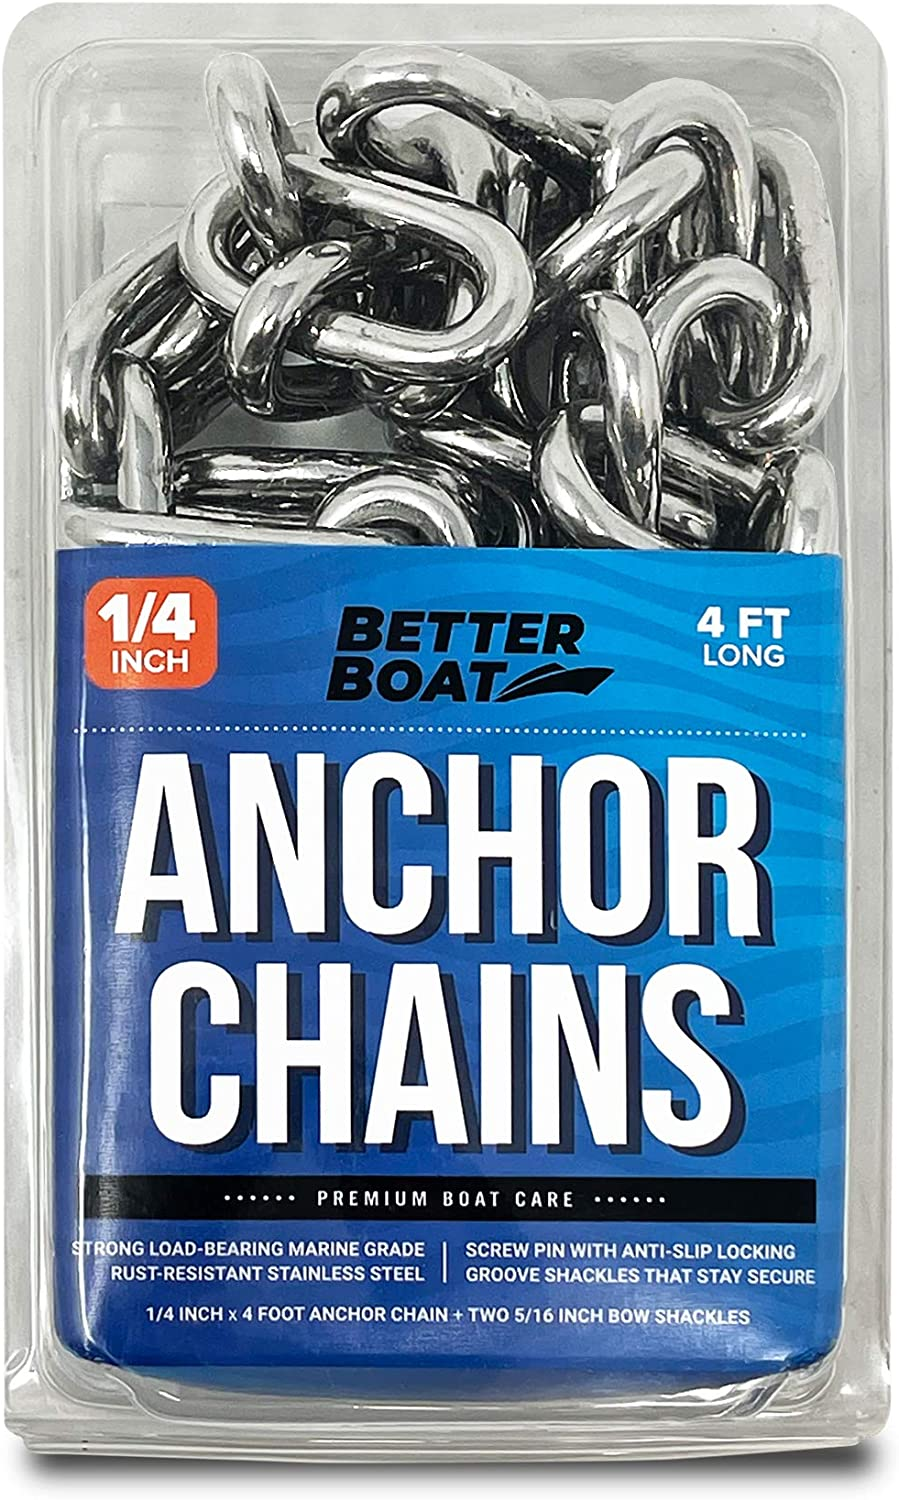 """Better Boat 4 Foot 1/4"""" Stainless Steel Anchor Chain and Double Shackle Link Ends Marine Grade : Sports & Outdoors"""